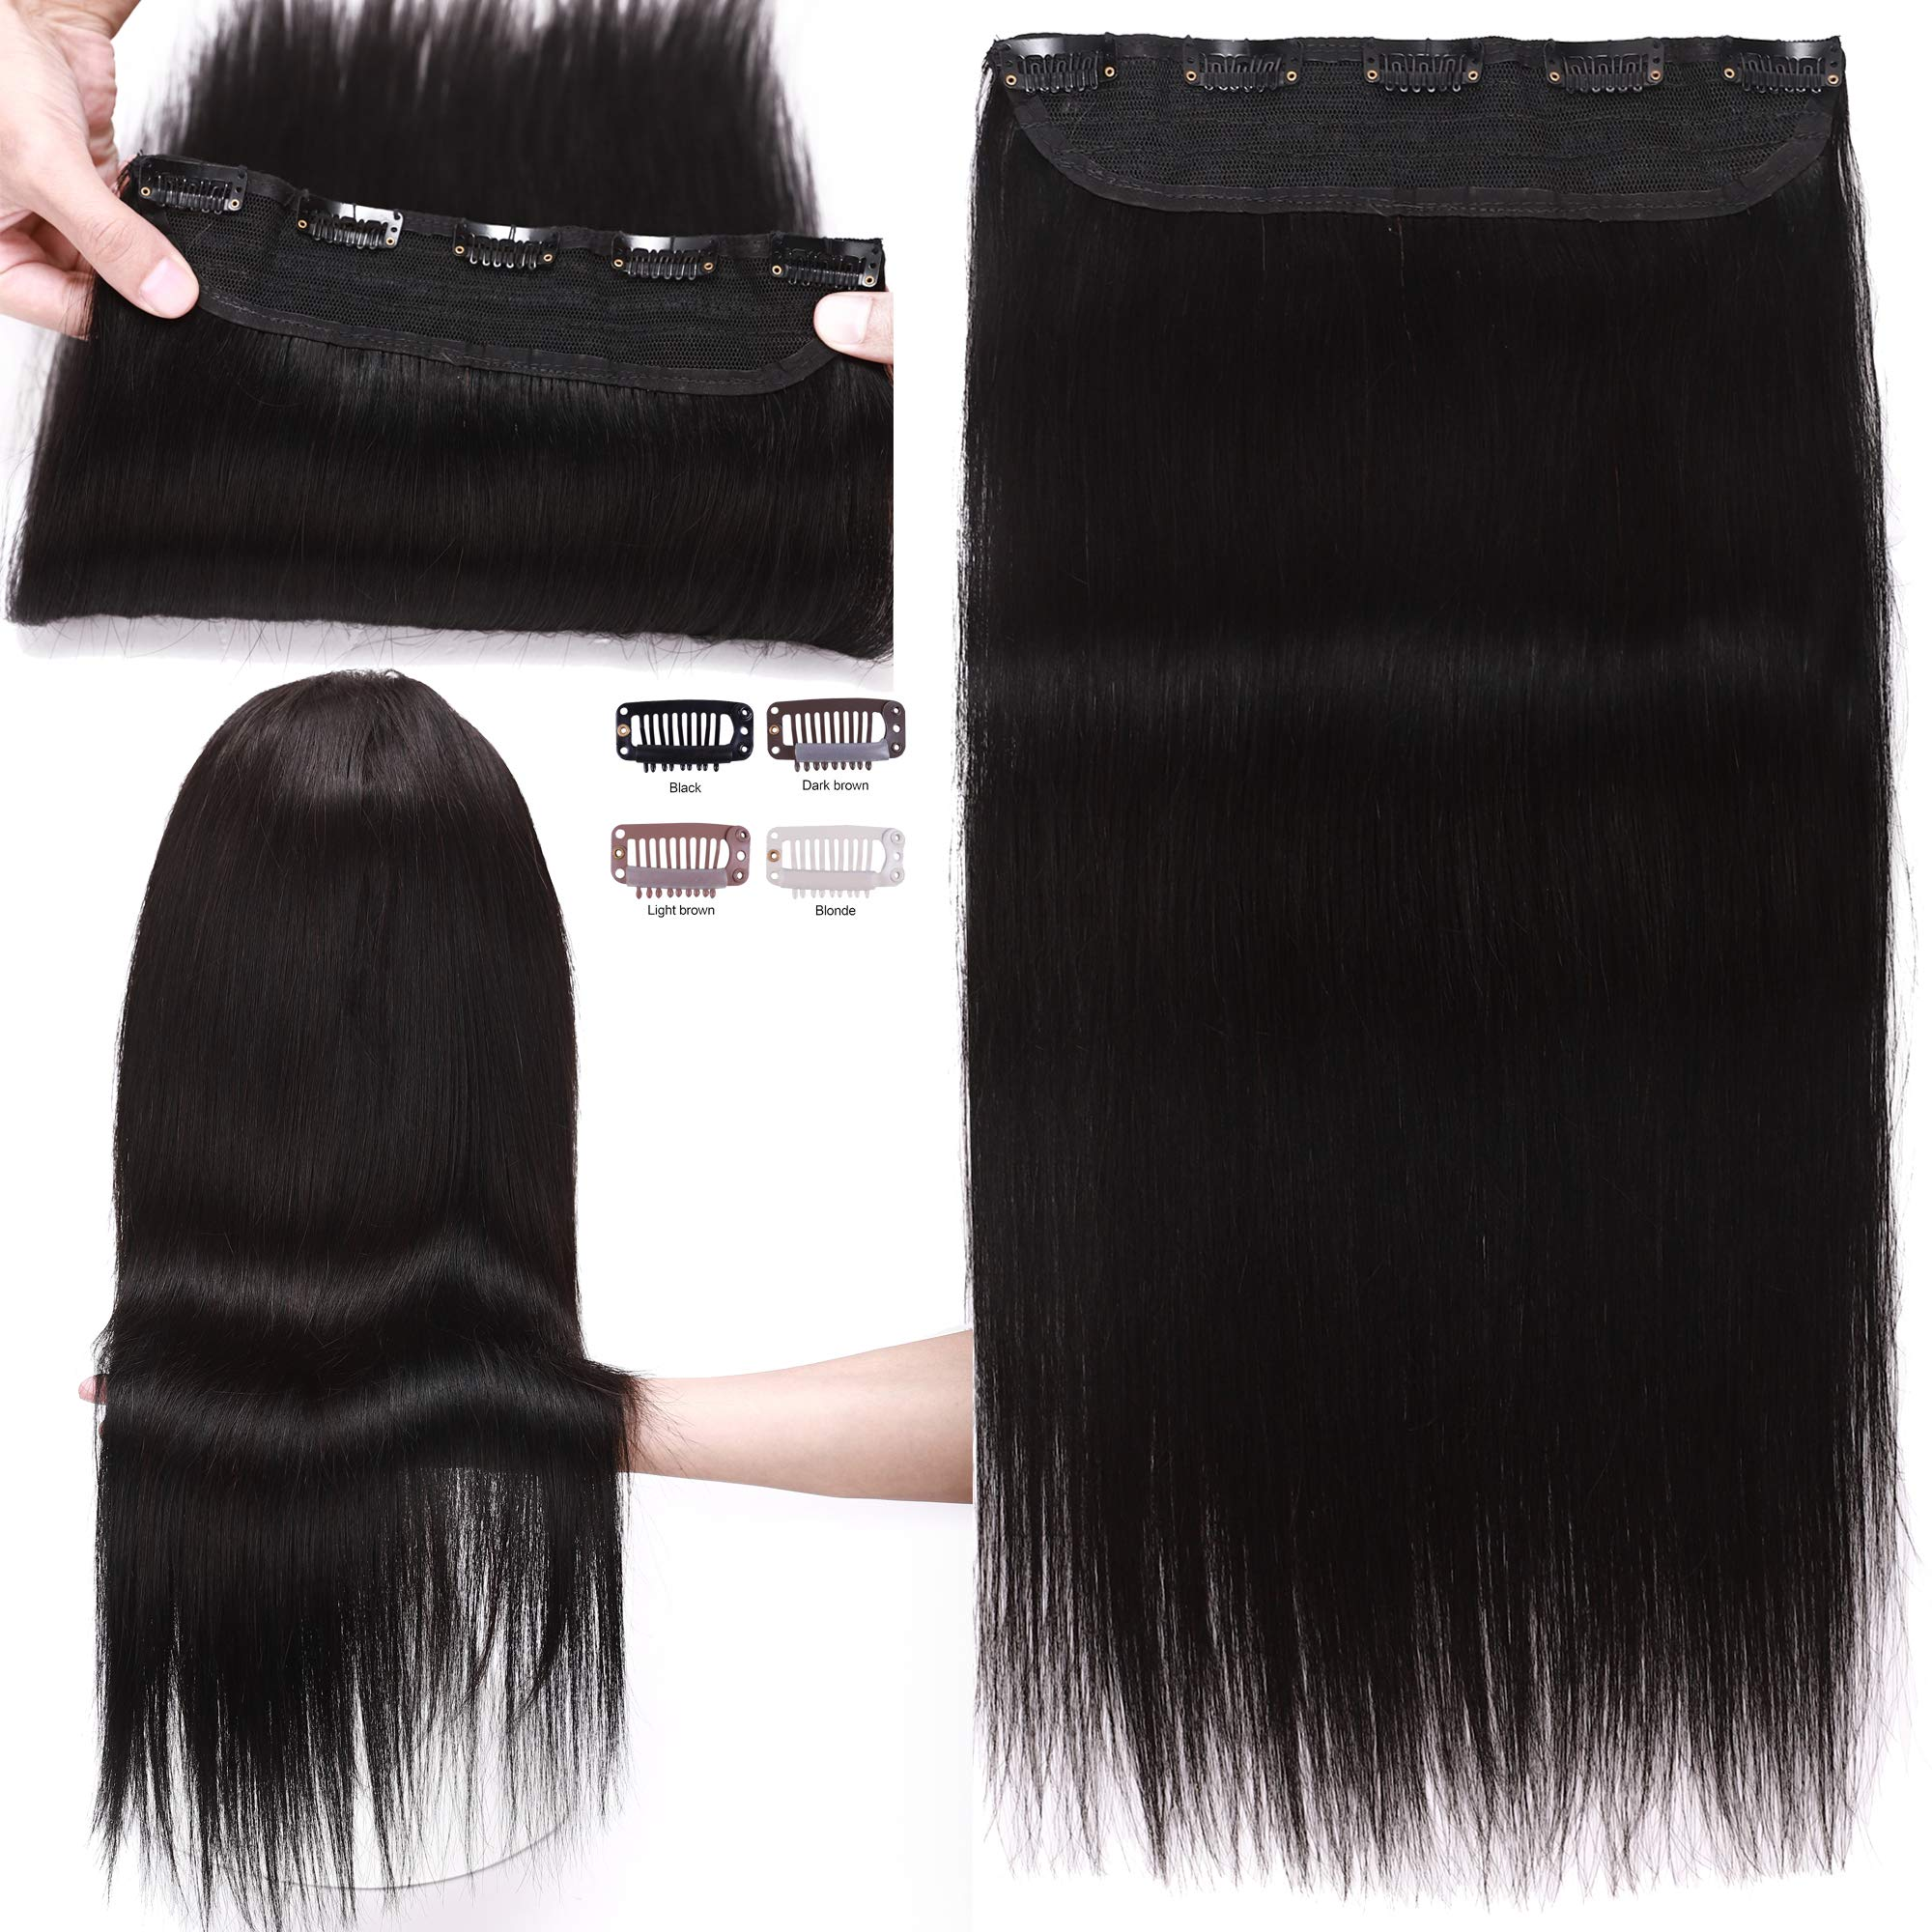 S-noilite 16inch 80g Clip in Real Human Hair Extensions 100% Remy Hair One Piece 5 Clips 3/4 Full Head Straight Invisible Thick Clip on Extensions for Women Gifts #1 Jet Black